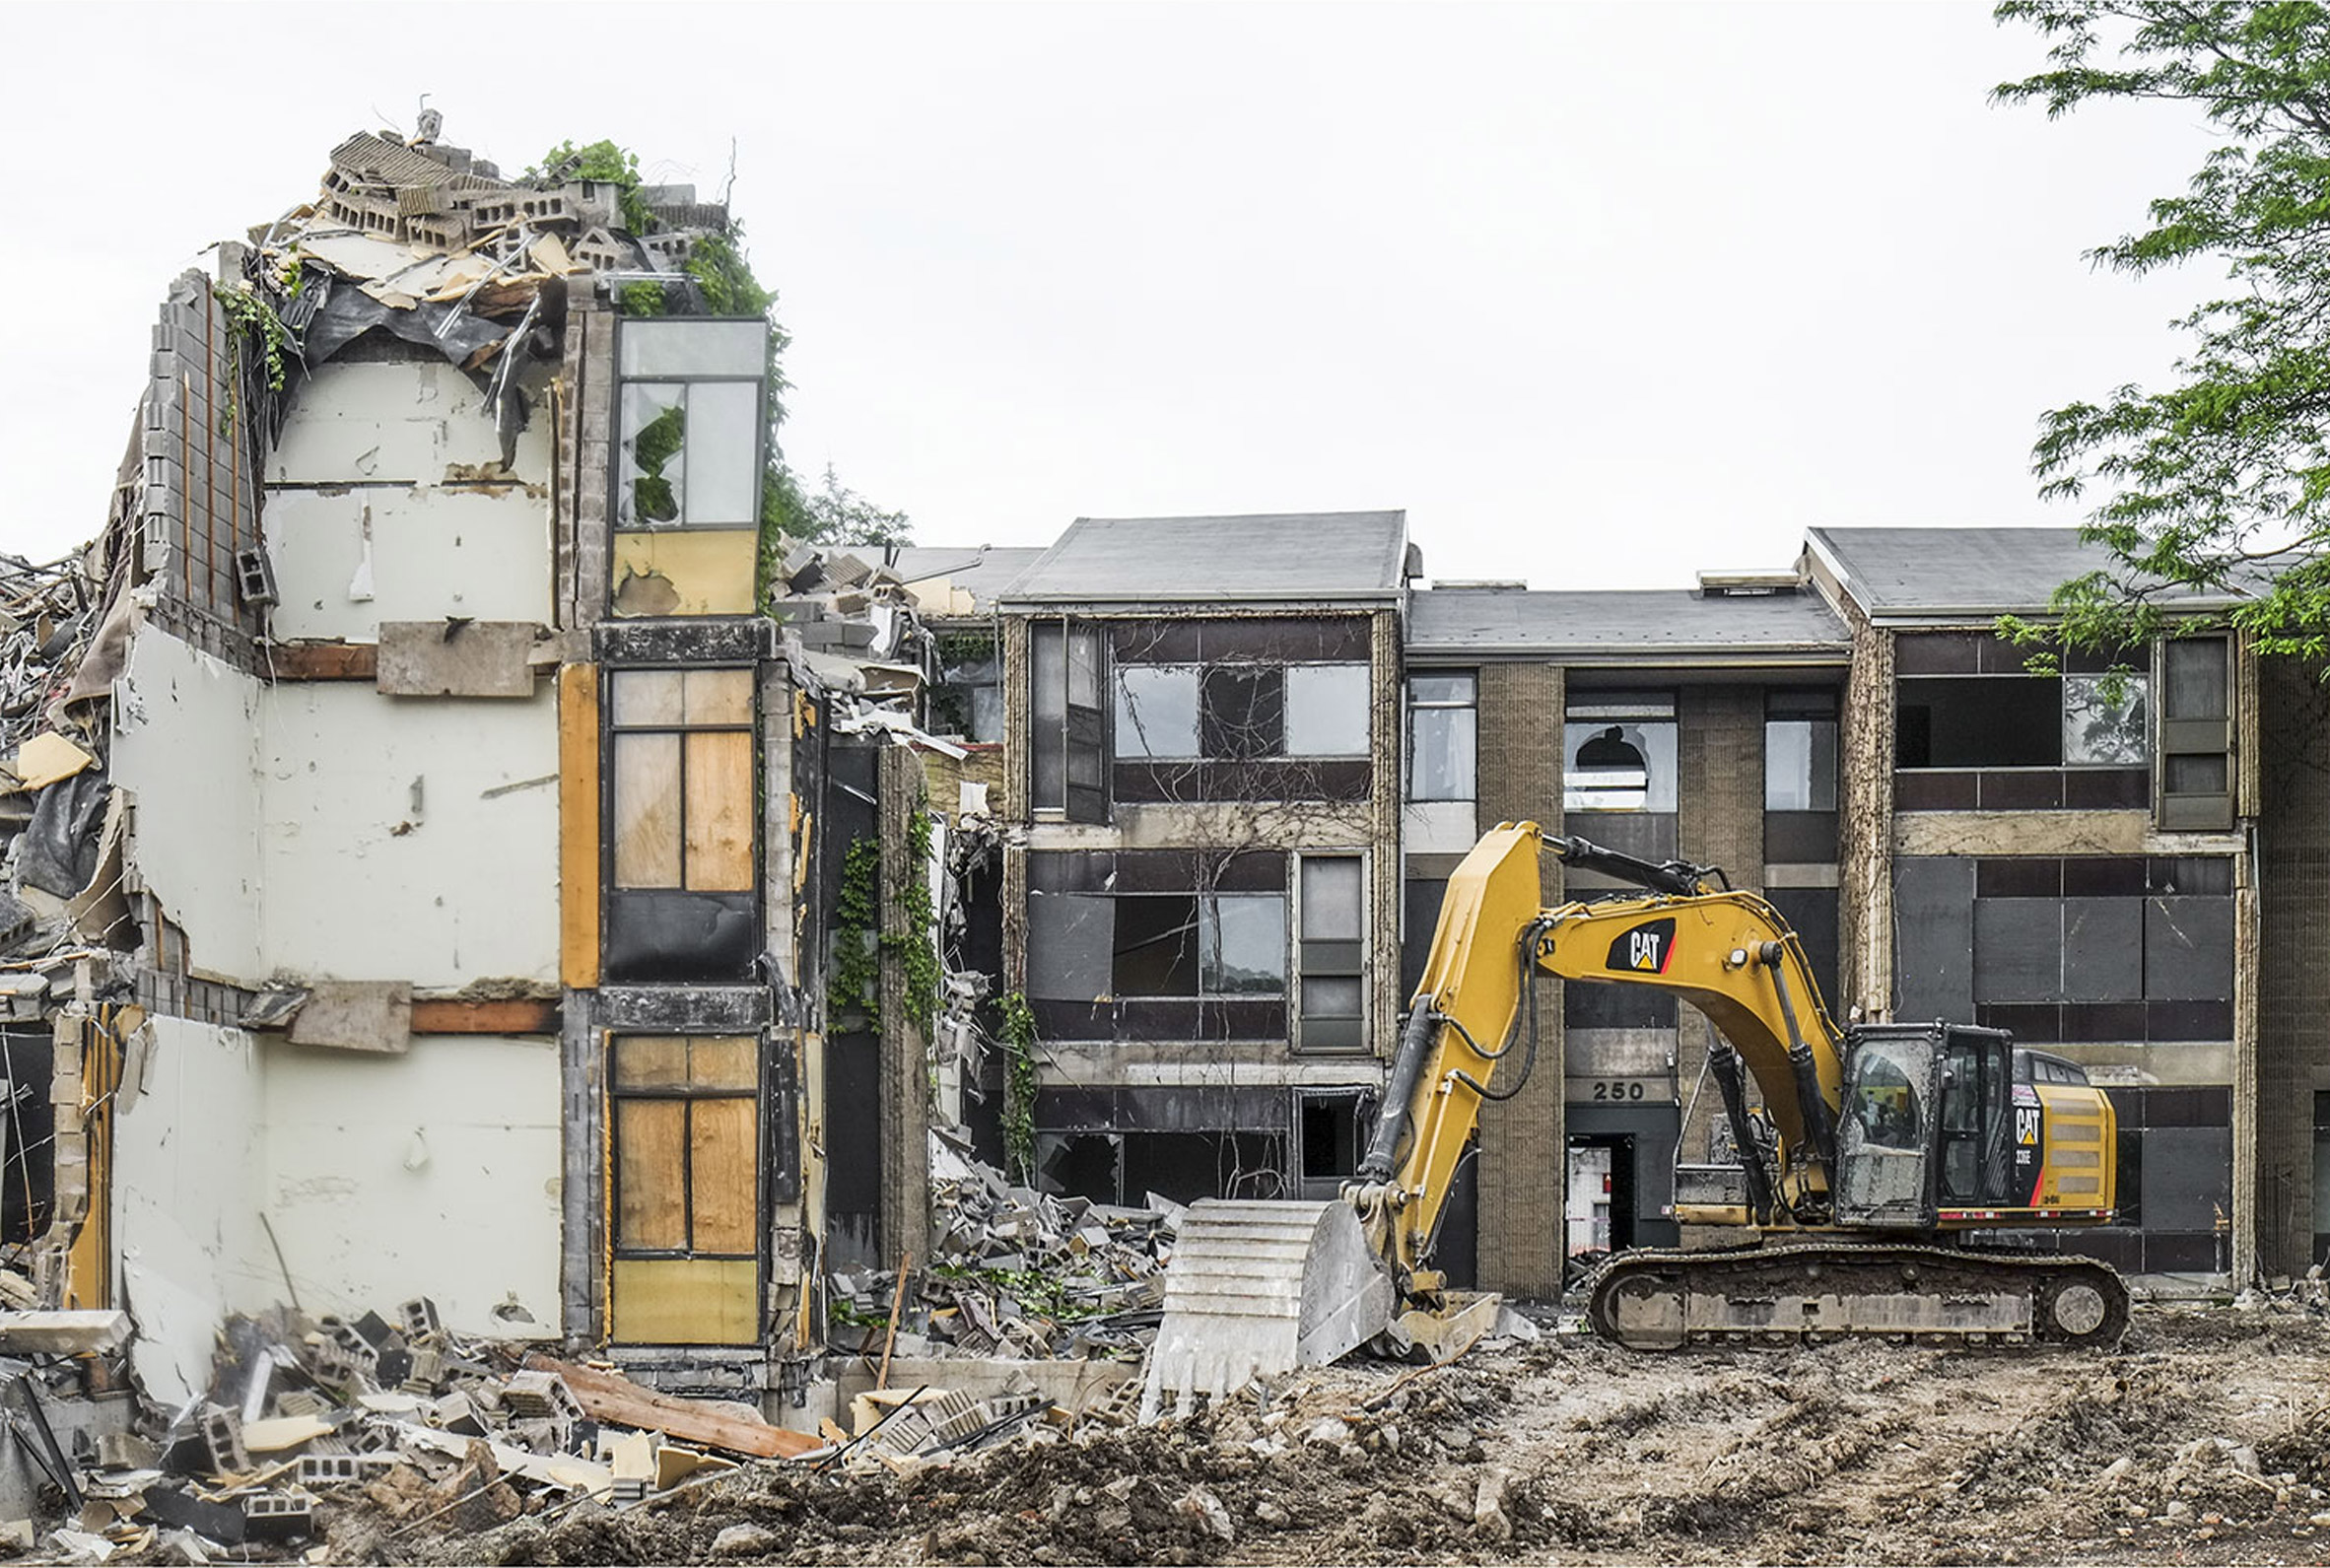 Destruction of brutalist buildings shown at Boston photography exhibition